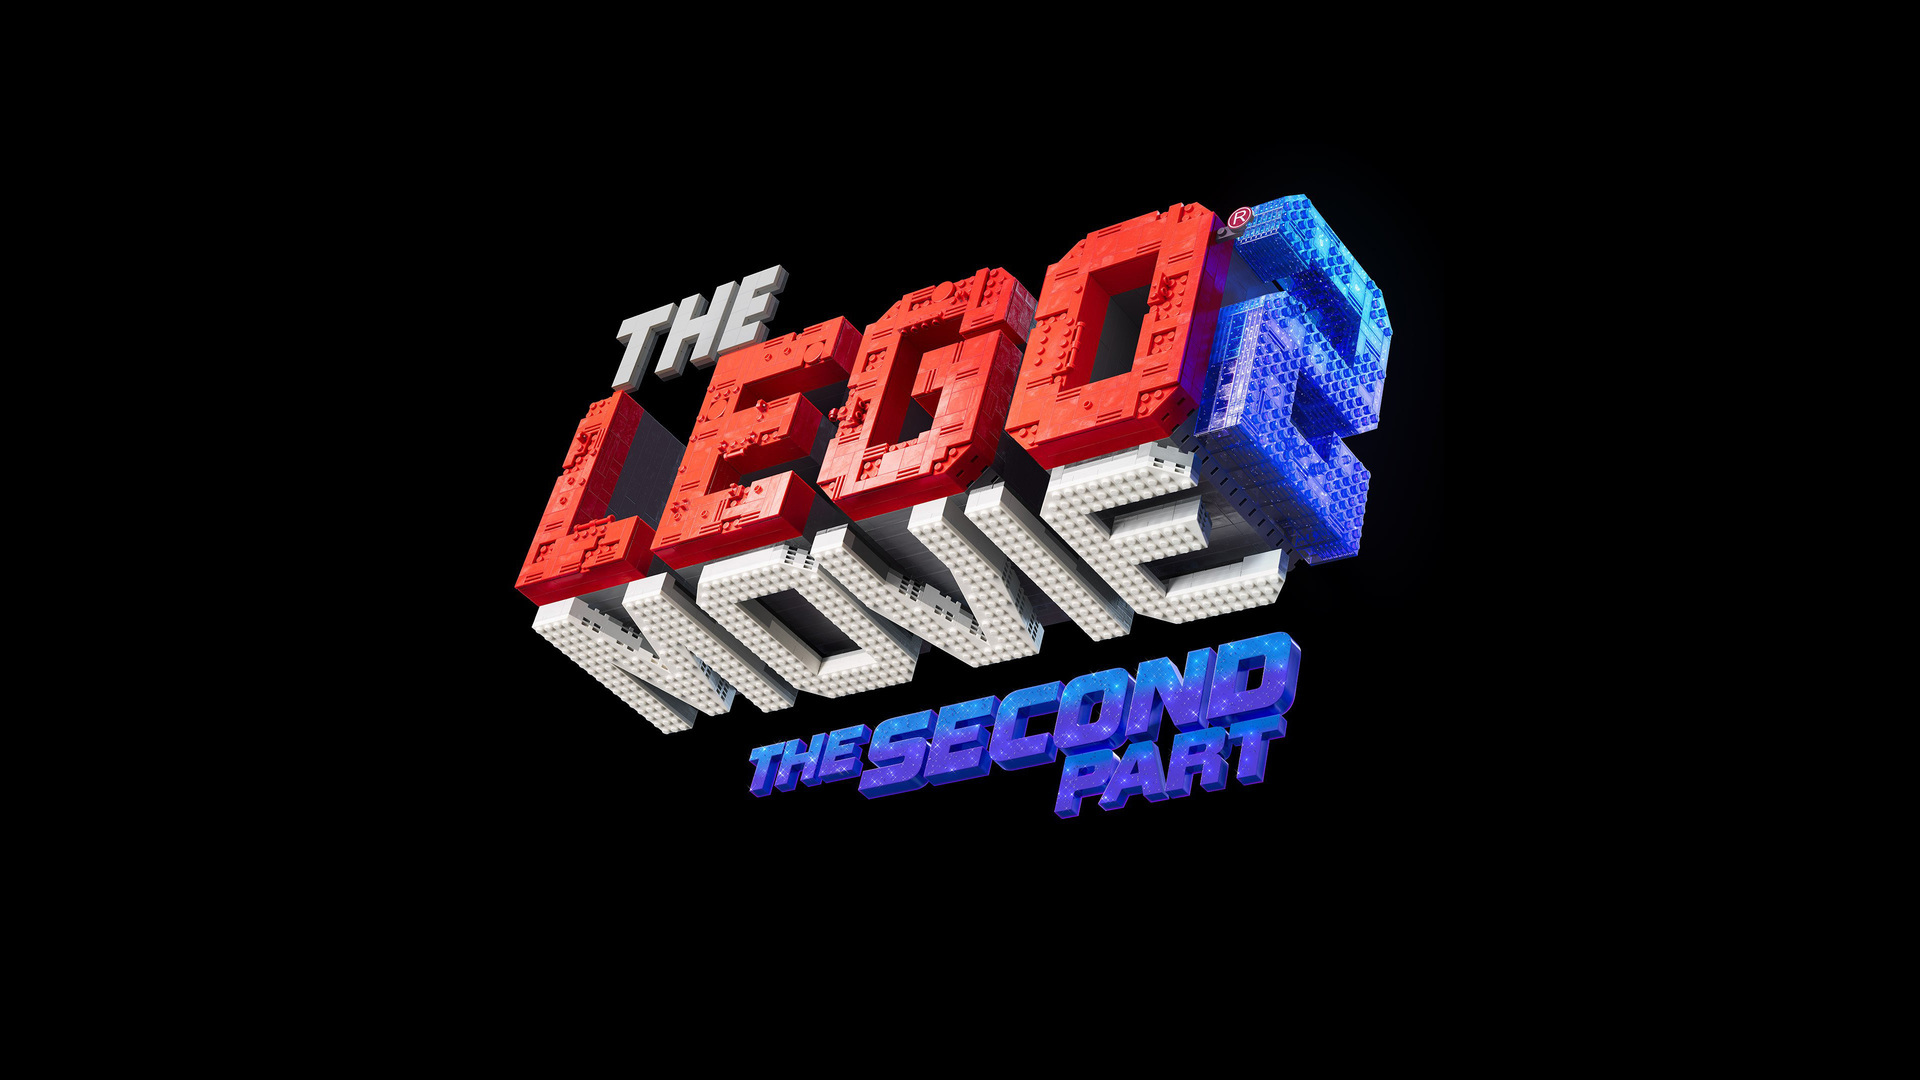 9 Best LEGO Movie 2 The Second Part Wallpapers in HD 1920x1080